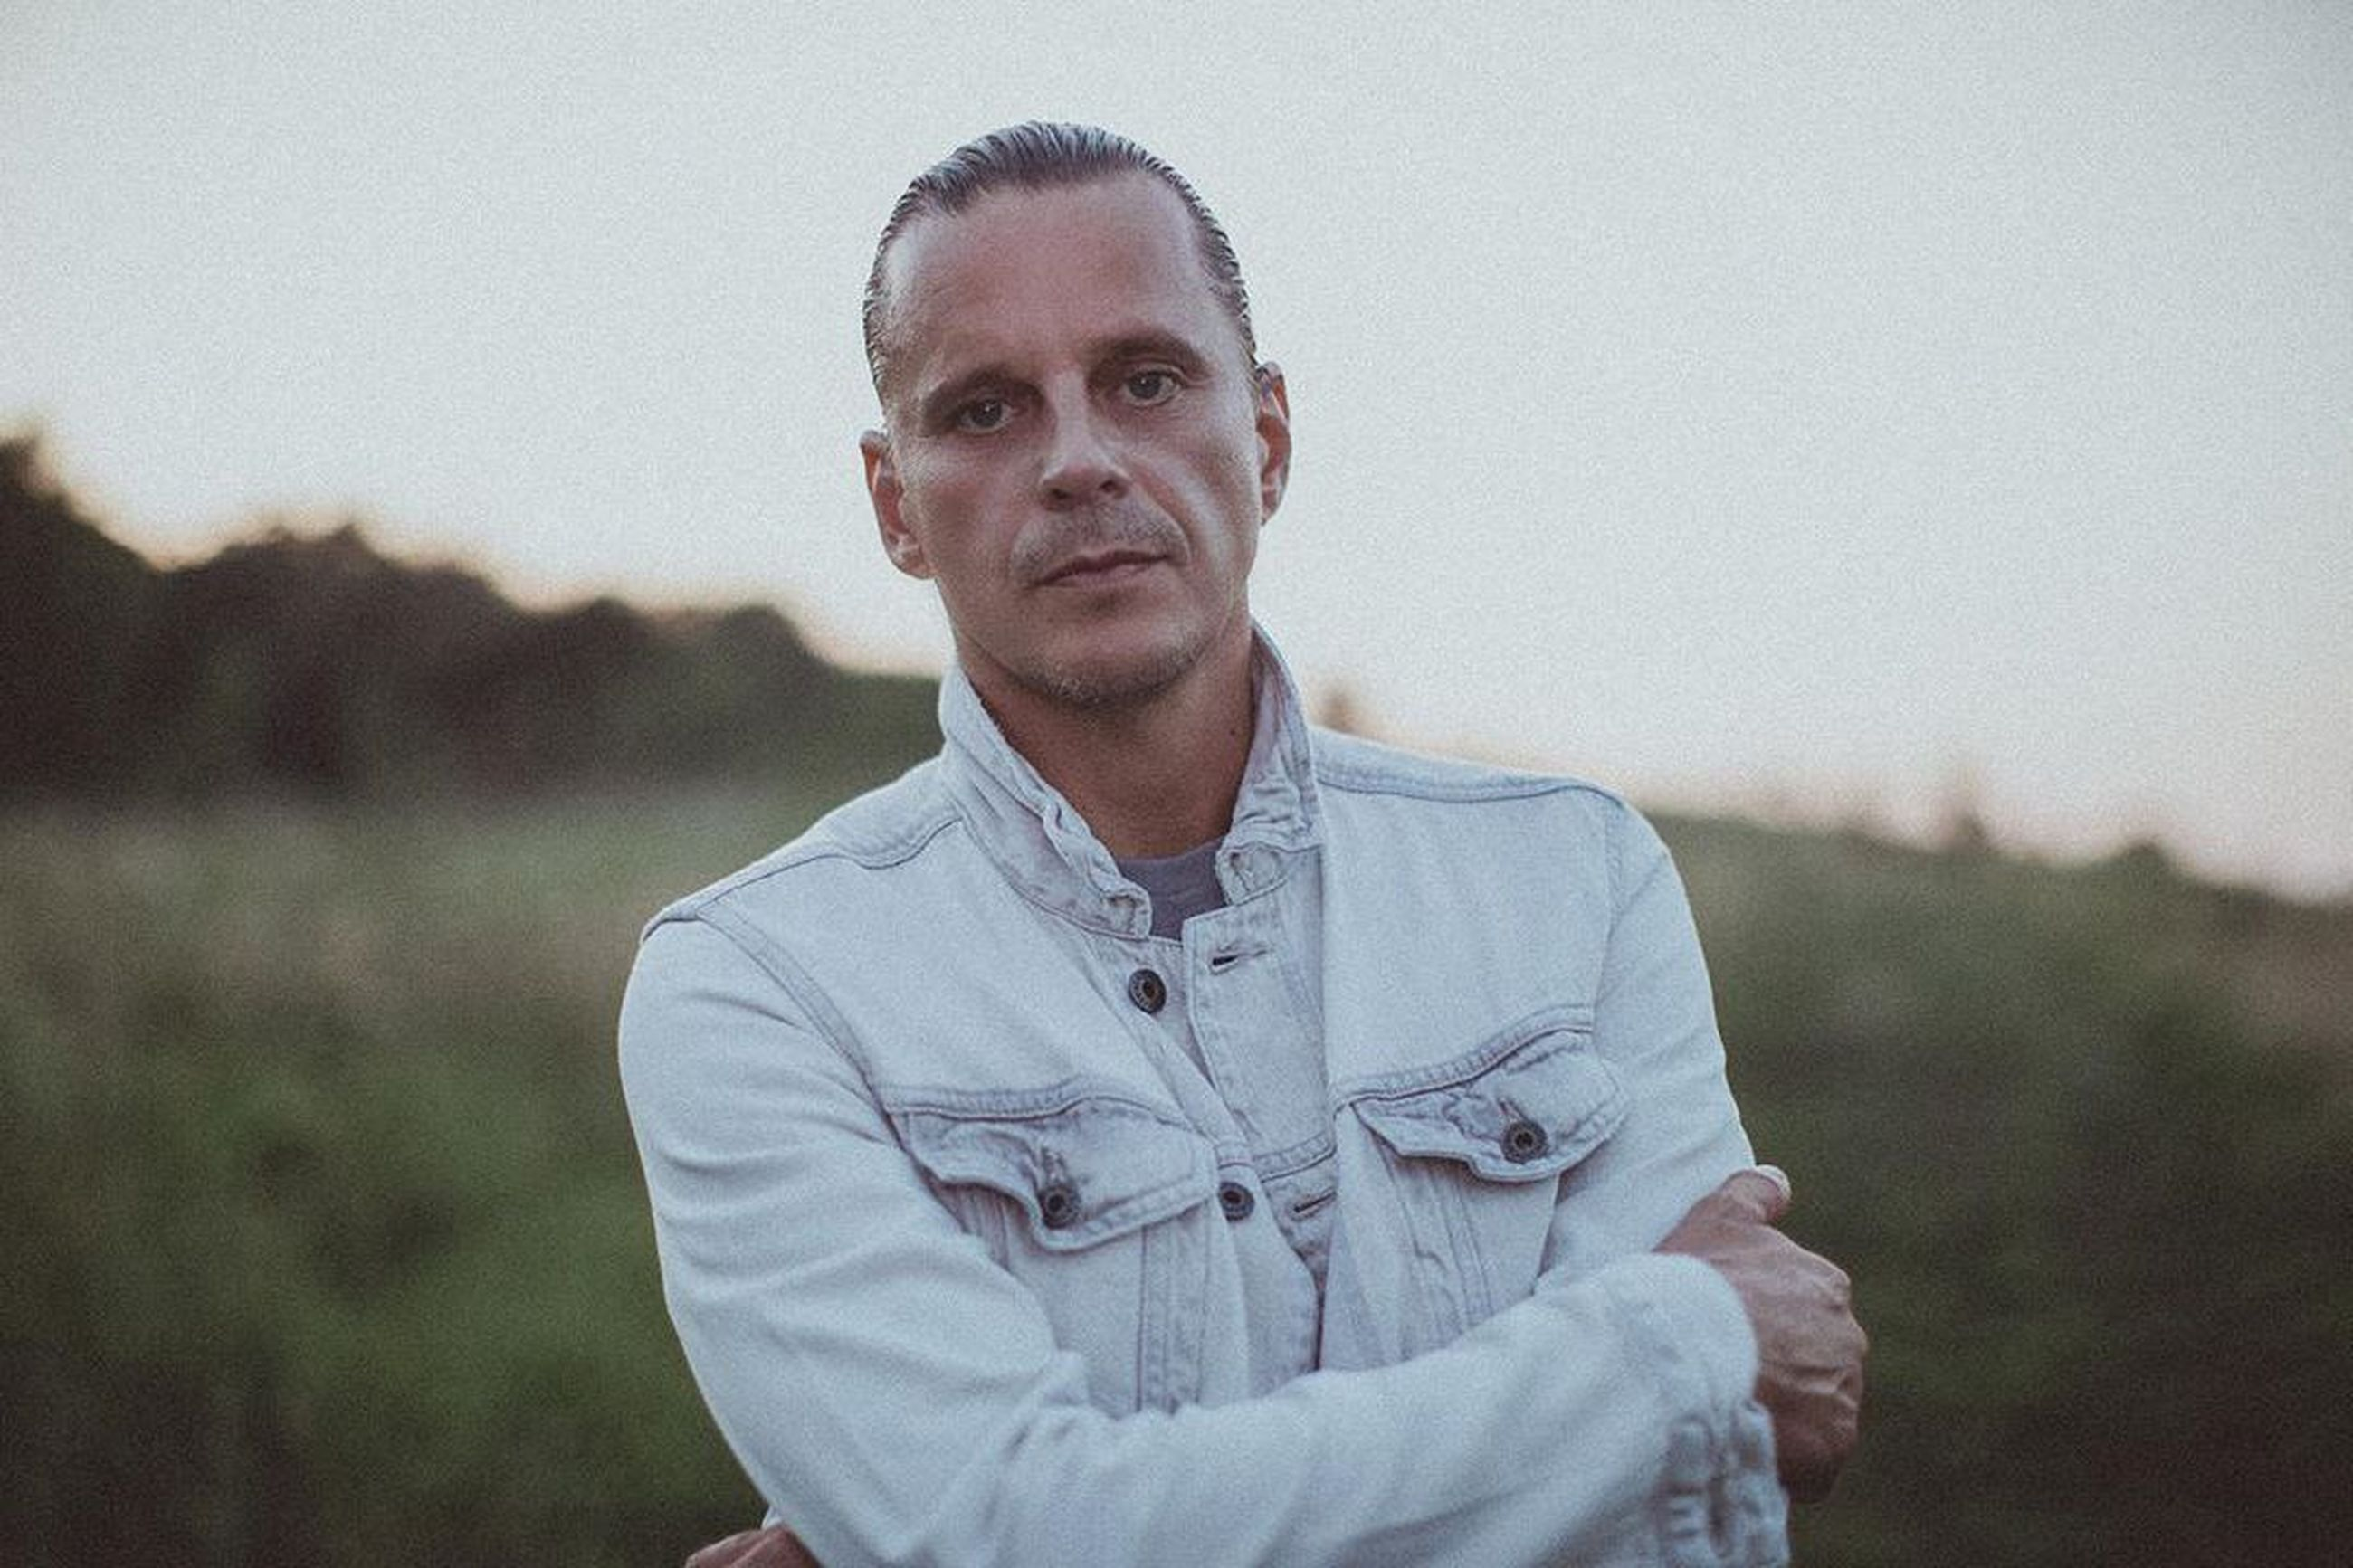 one person, portrait, adult, men, waist up, looking at camera, front view, person, standing, casual clothing, nature, senior adult, focus on foreground, day, shirt, sky, landscape, serious, rural scene, emotion, copy space, lifestyles, land, outdoors, field, button down shirt, human face, arms crossed, dress shirt, mature adult, looking, plant